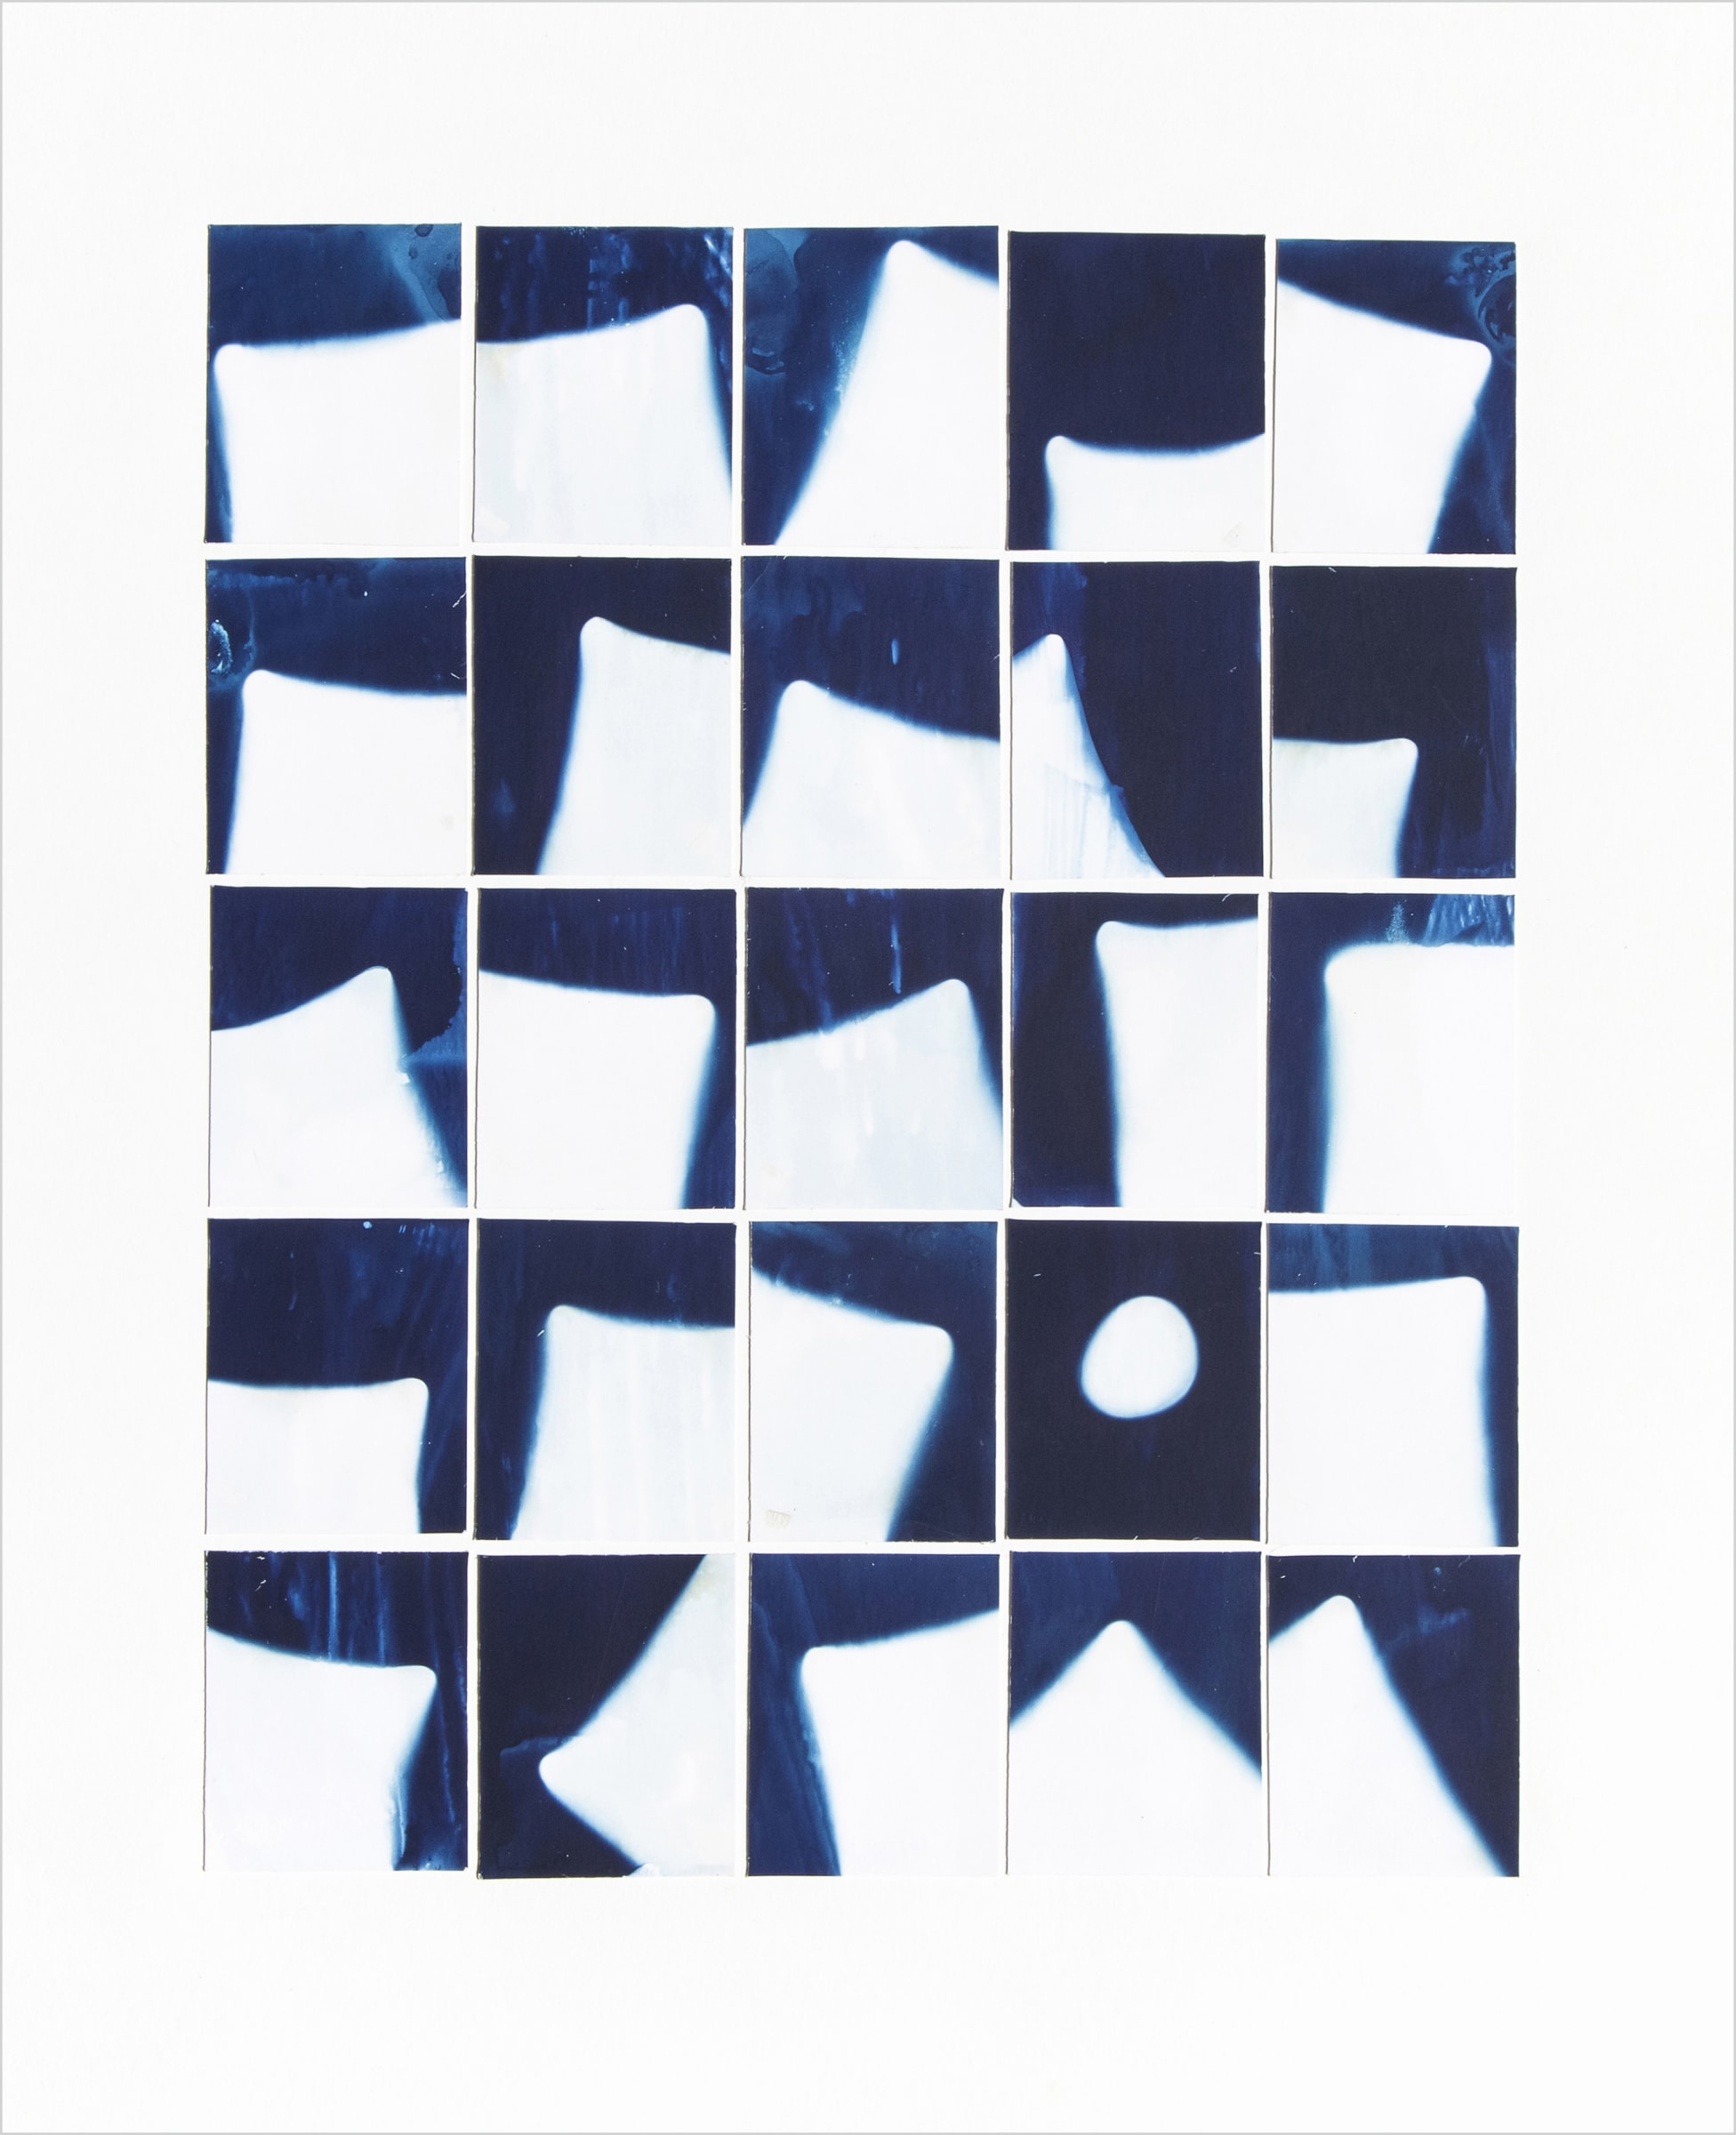 "<span class=""link fancybox-details-link""><a href=""/content/feature/160/artworks523/"">View Detail Page</a></span><div class=""medium"">Collage of twenty-five 2"" x 2.5"" cyanotype photograms on a 16"" x 20""<br /> museum board<br /> Print only<br /> Unique</div> <div class=""dimensions"">50.8 x 40.6 cm<br /> 20 x 16 in</div>"